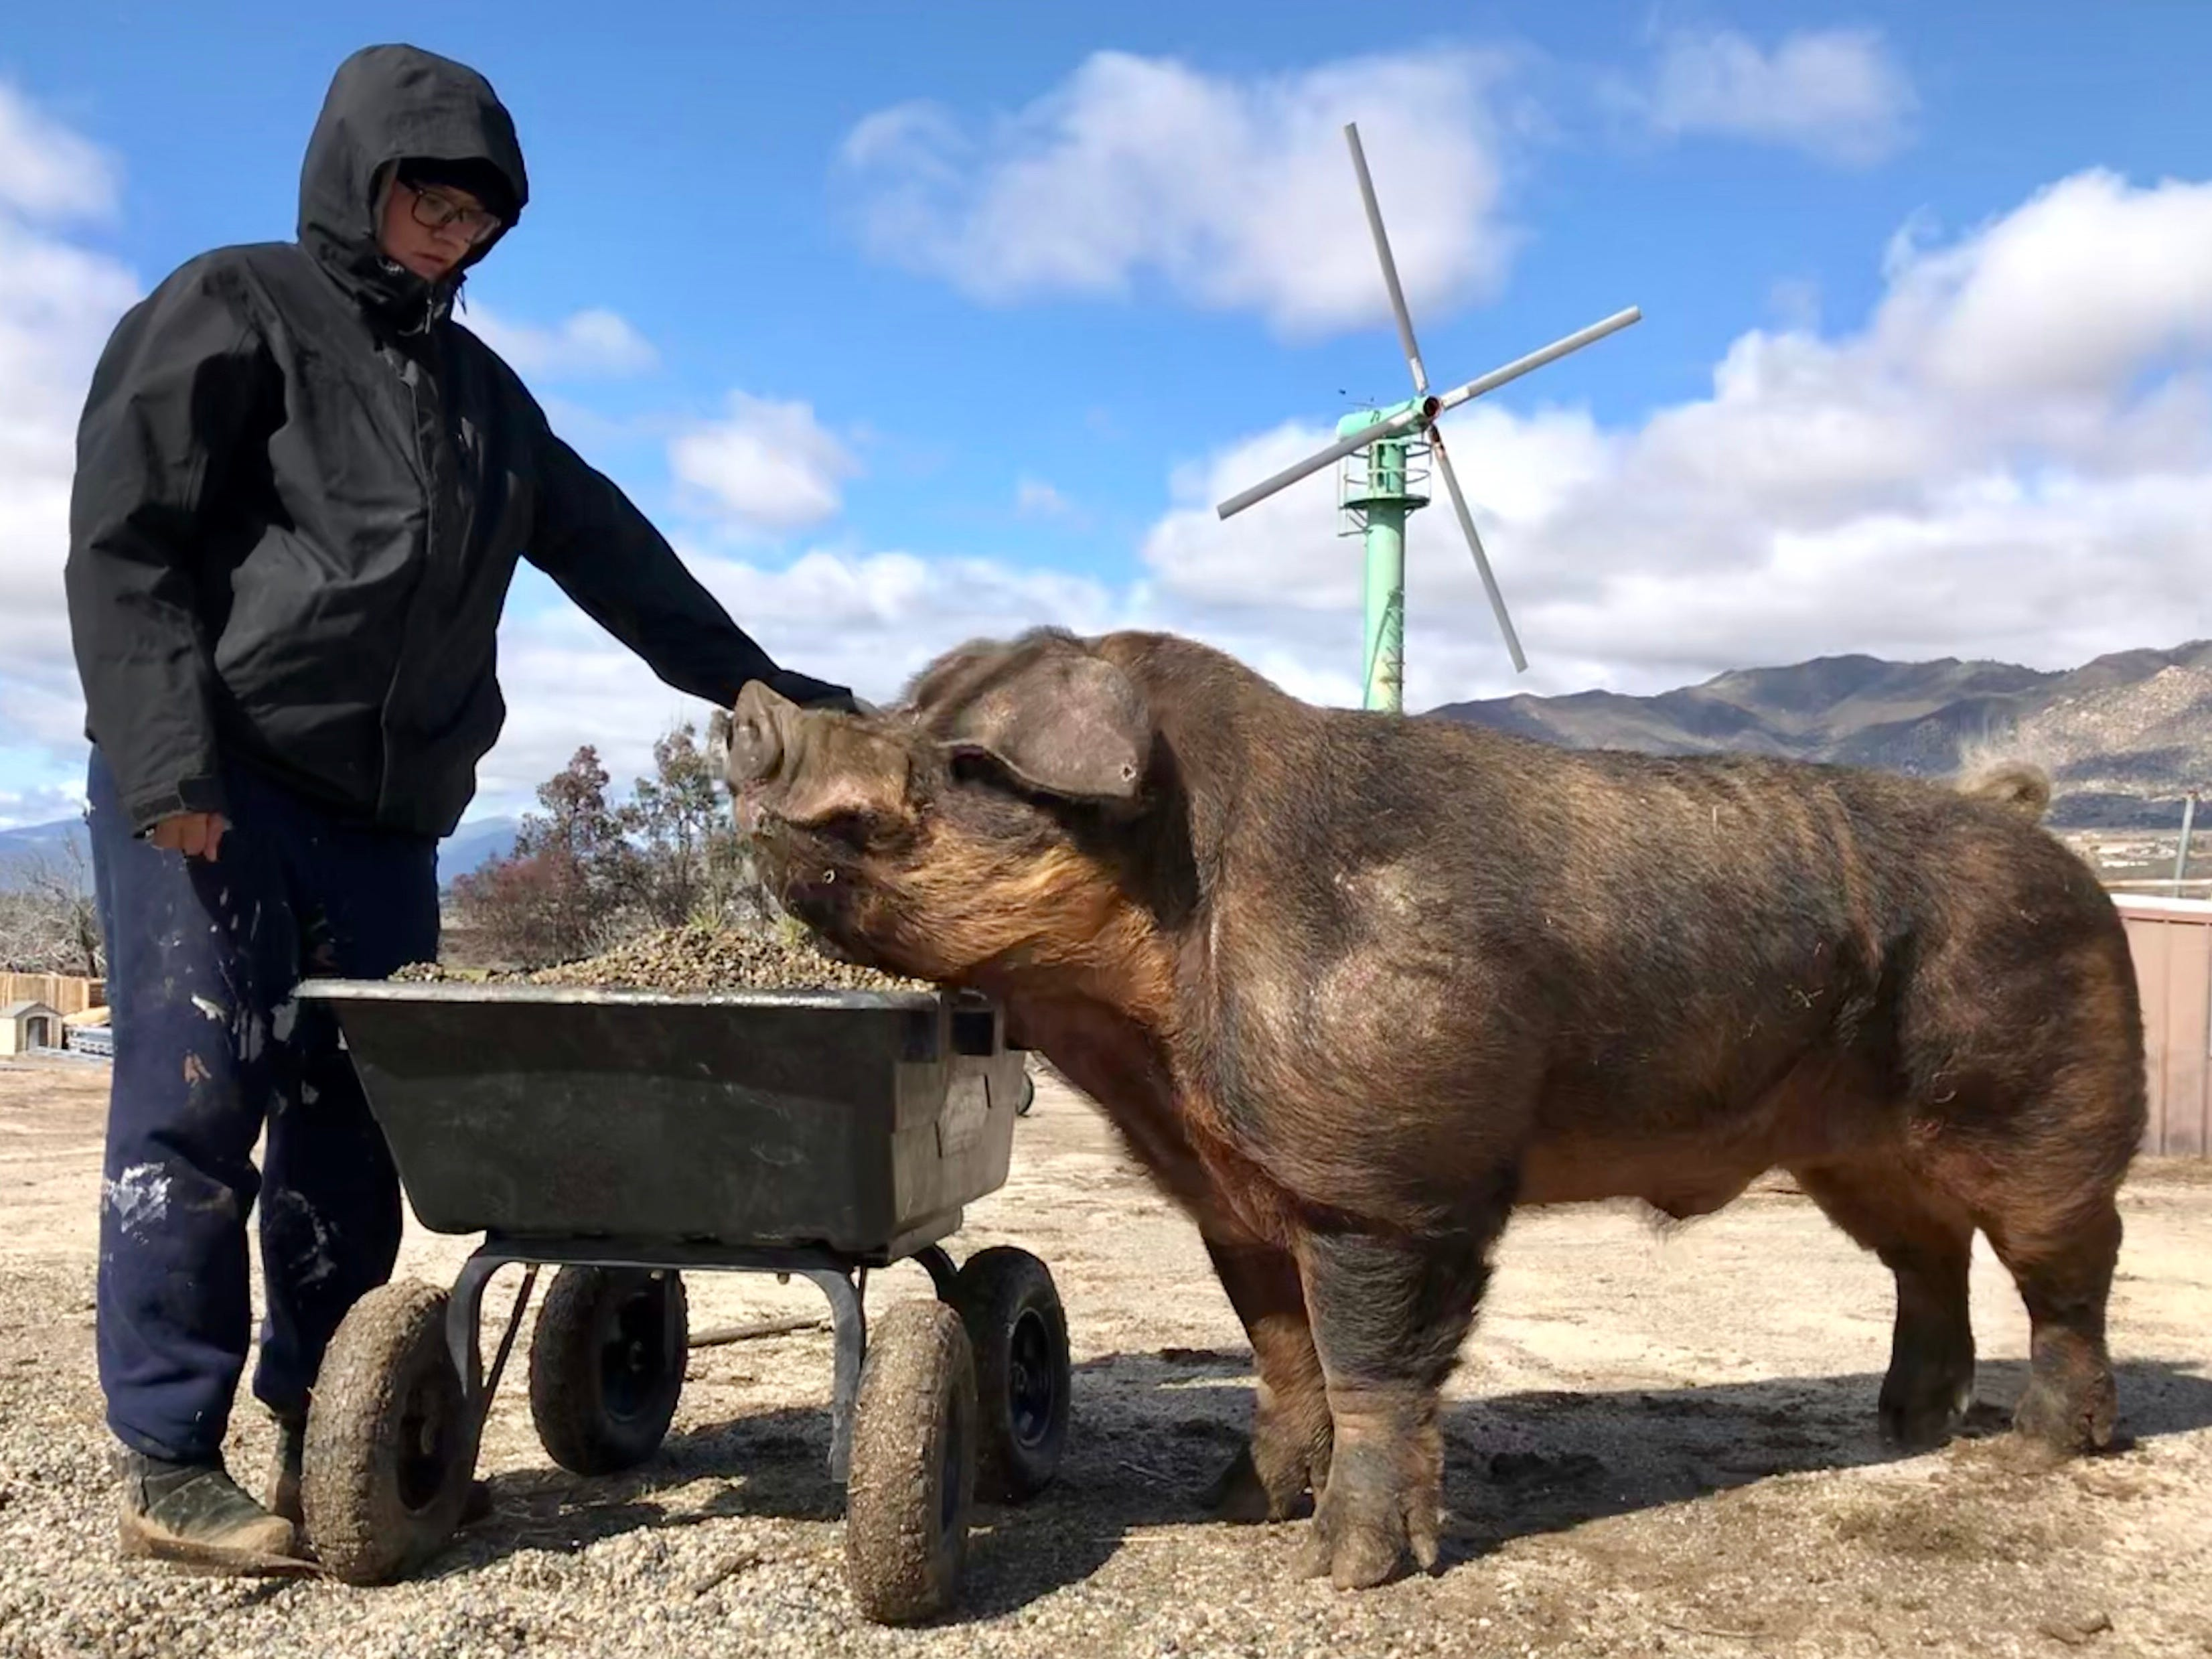 A huge pig that showed up repeatedly on a bike path outside Casitas Springs last month now has a name – Halfton – and a new home in San Diego County. Here, he hangs out with Tierra Tronboll, daughter of the founder of the rescue operation that saved him.